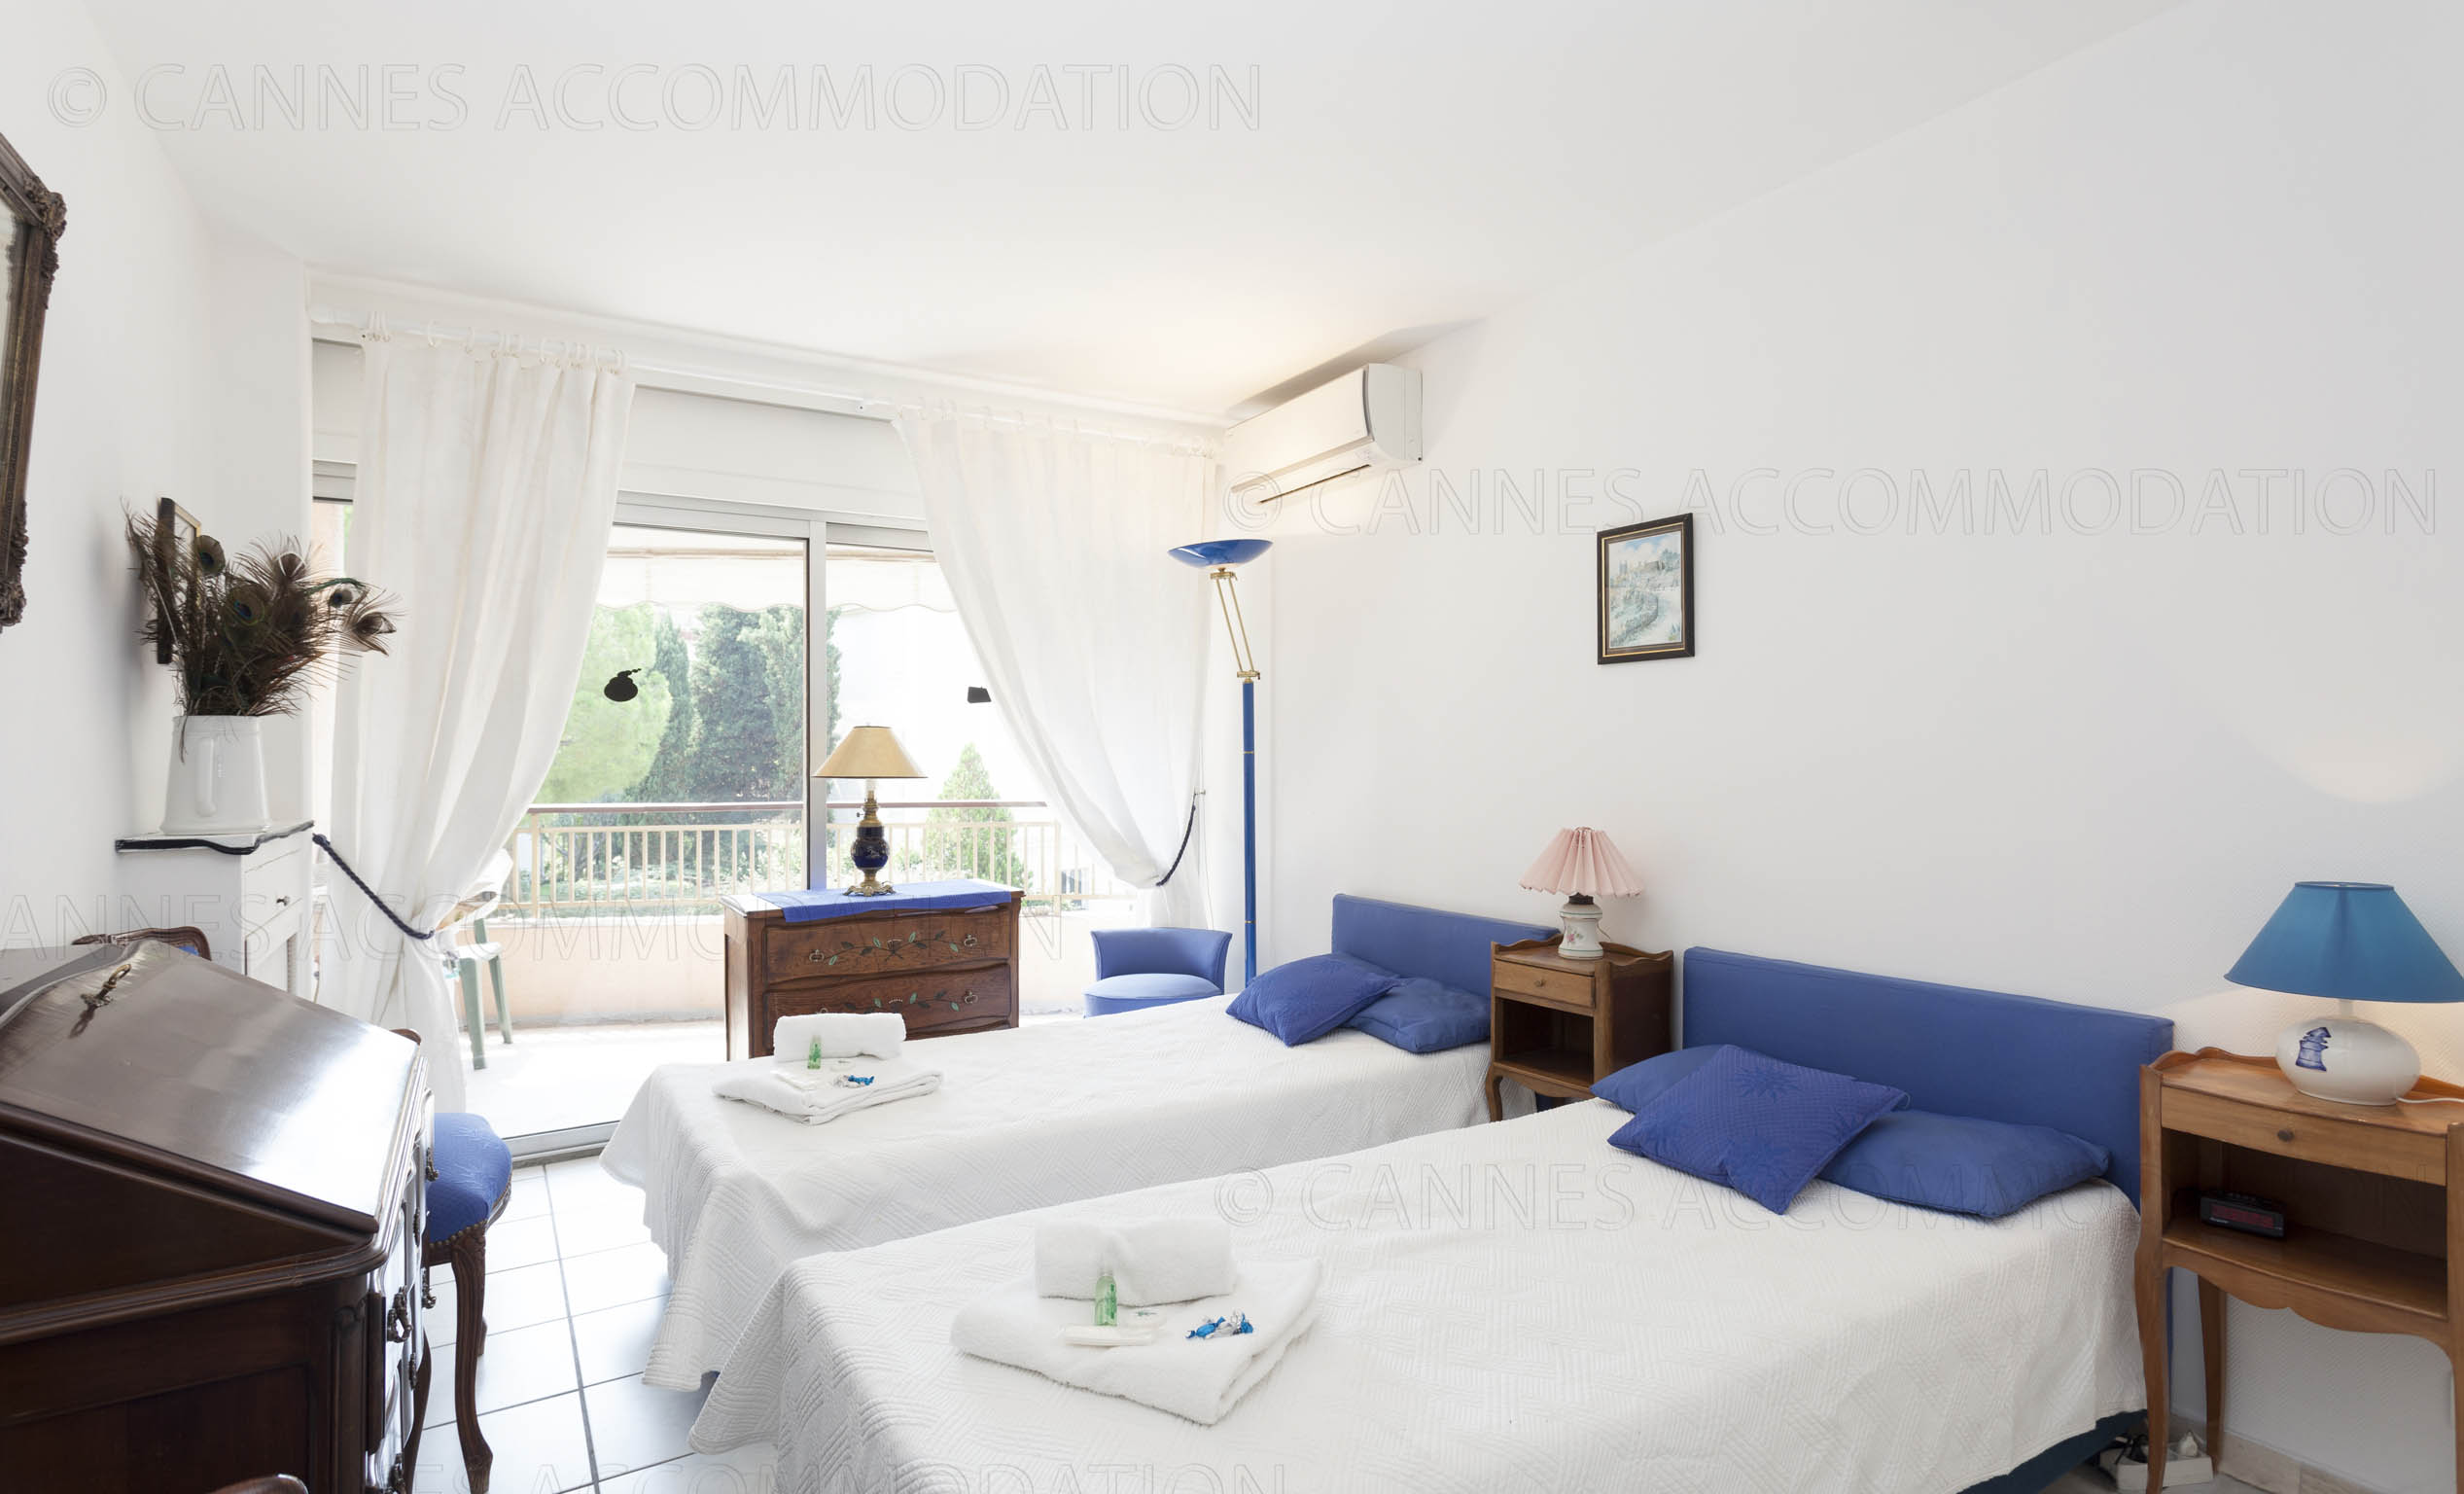 Appartement 1 chambre louer cannes grand hotel antares for Appartement 1 chambre a louer hull